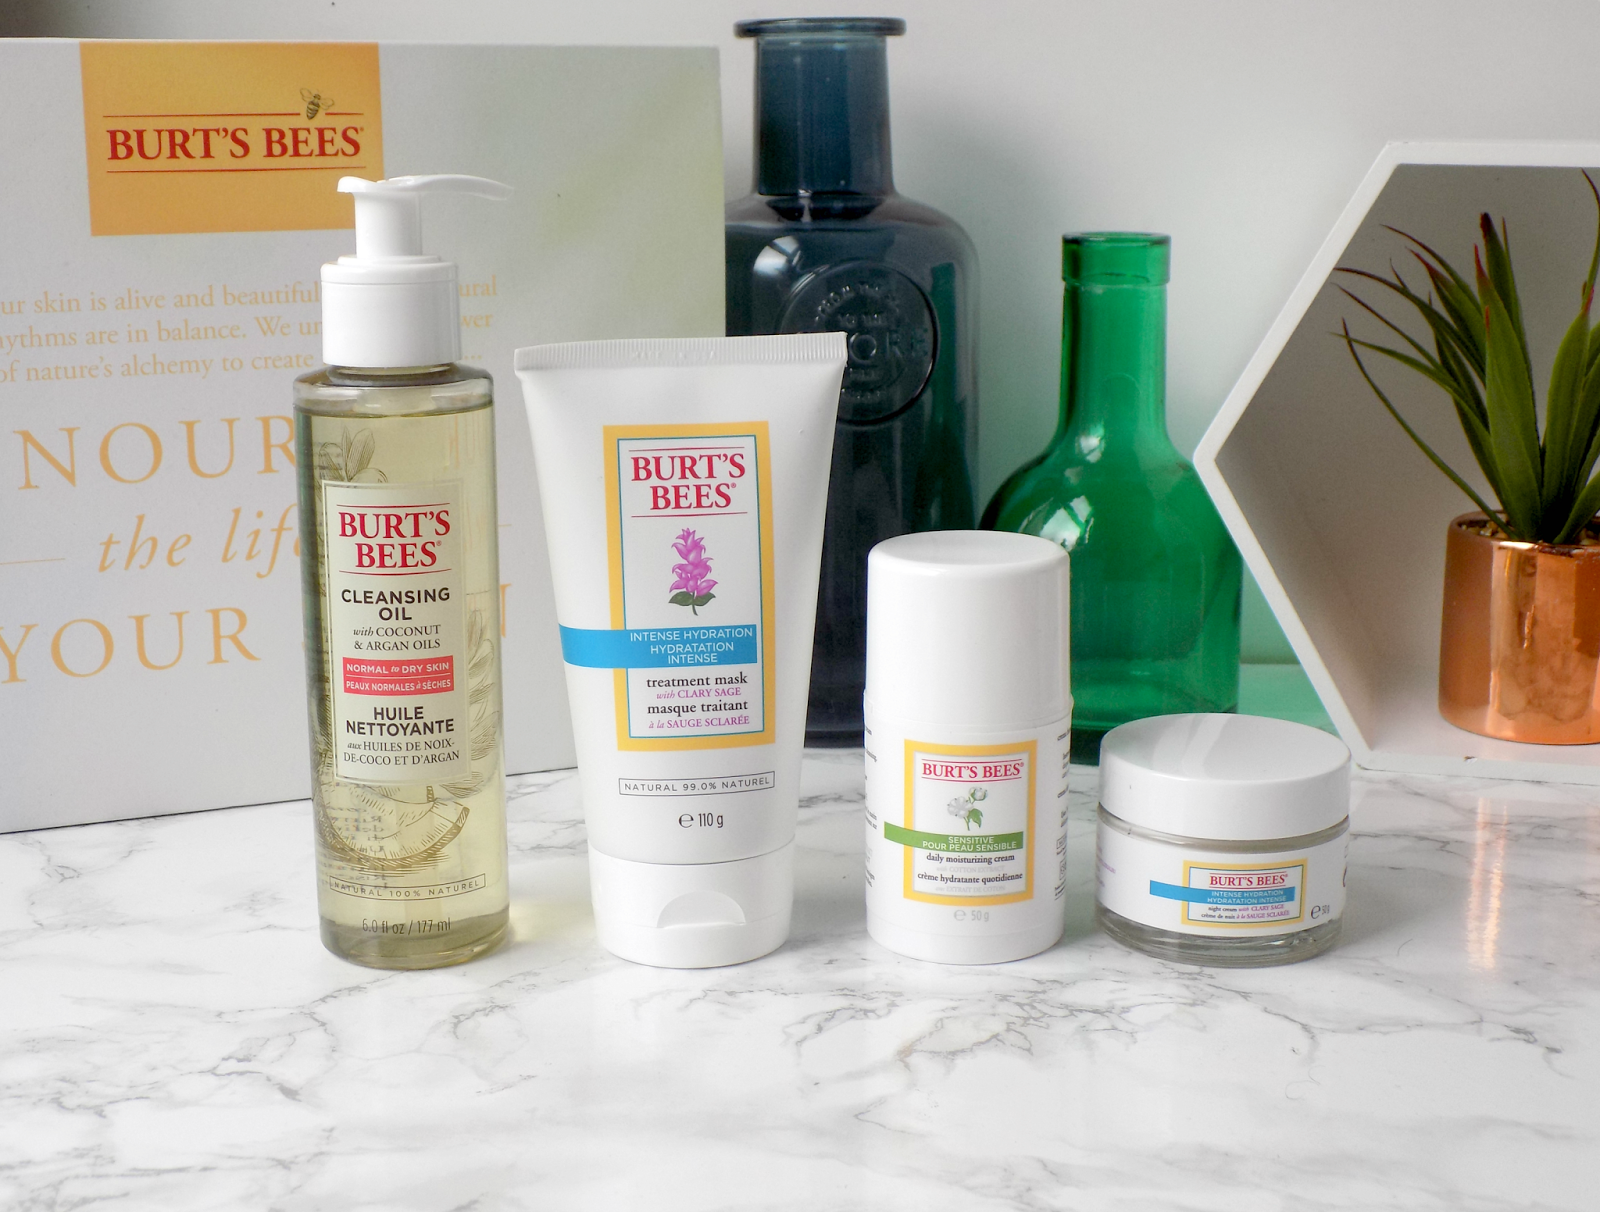 Burt's Bees skincare review